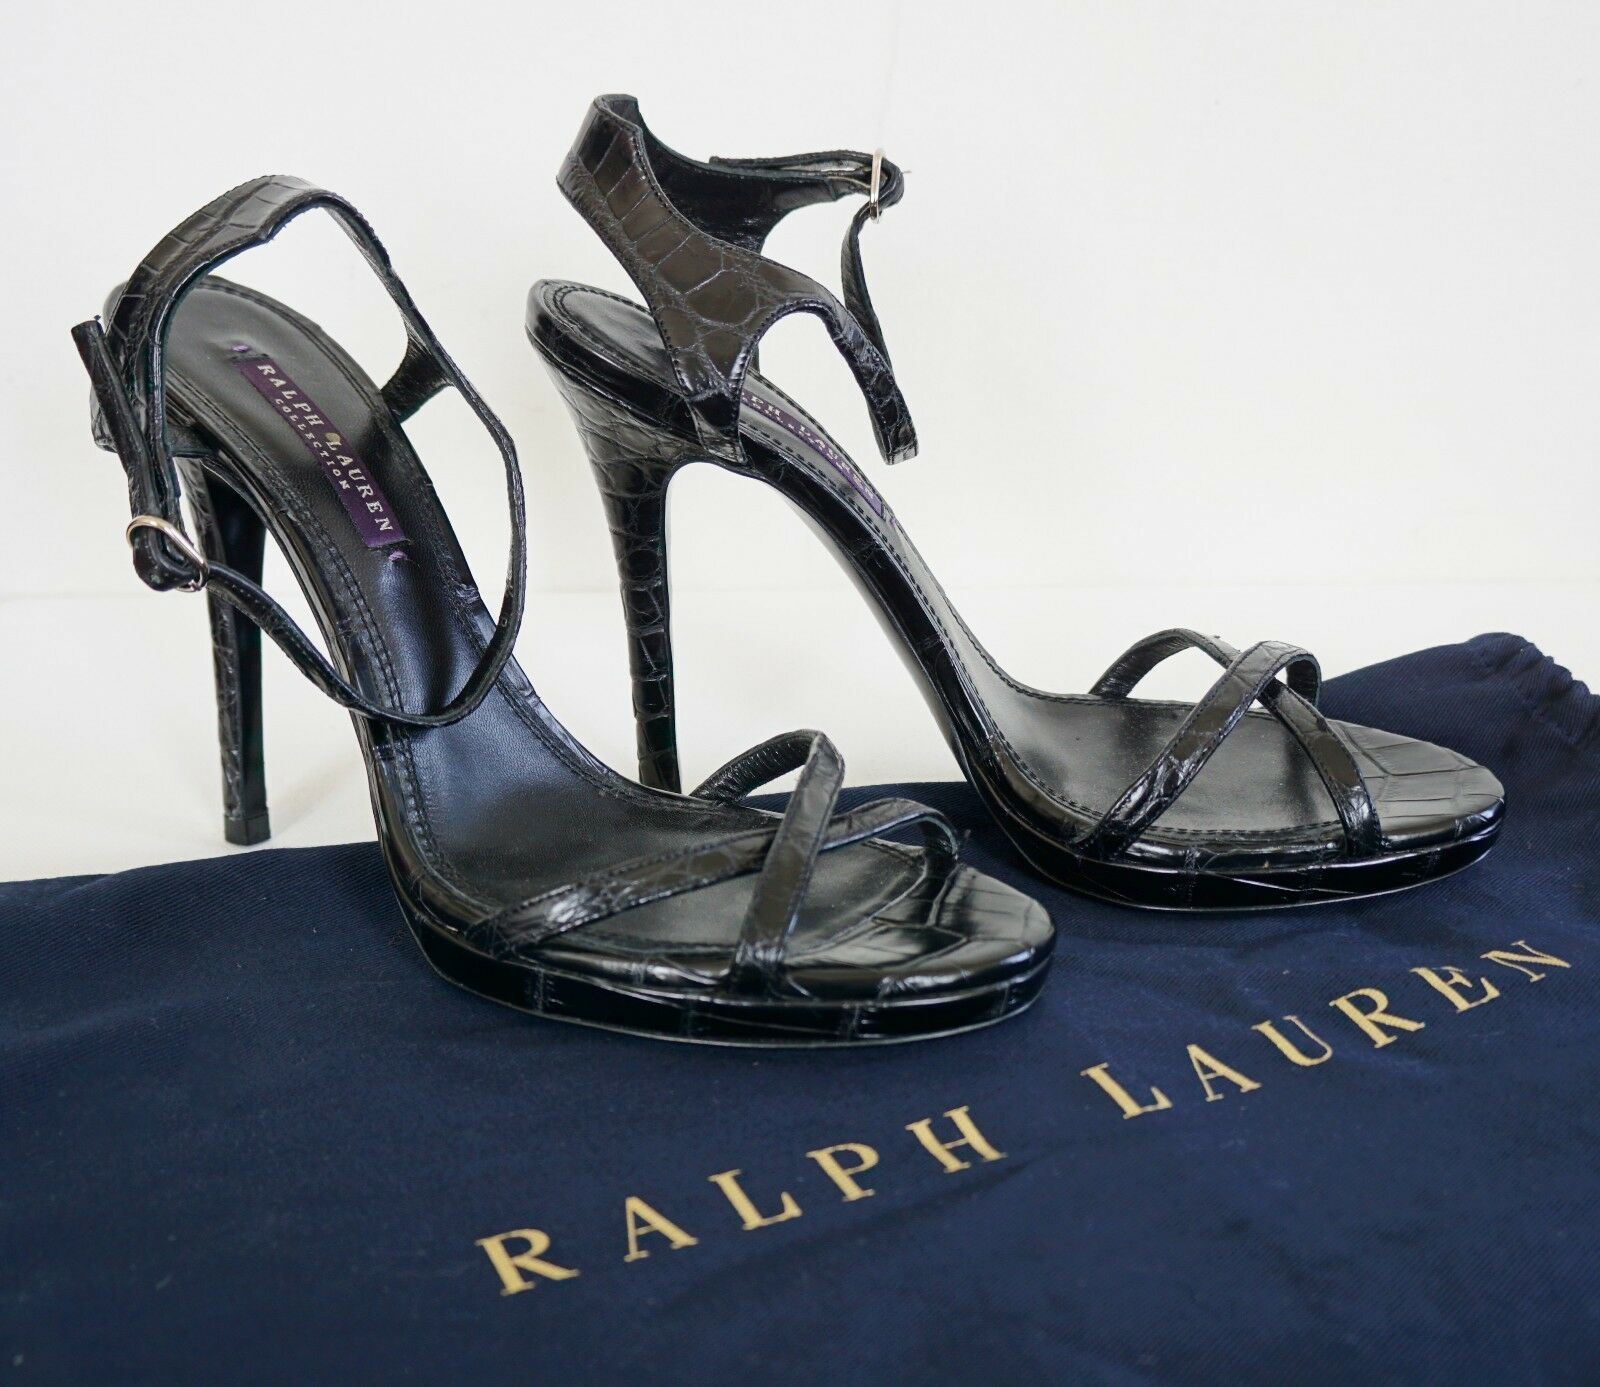 $2500 New RALPH LAUREN COLLECTION *DAKOTA* GENUINE CROCODILE Heels Sandals 9.5B